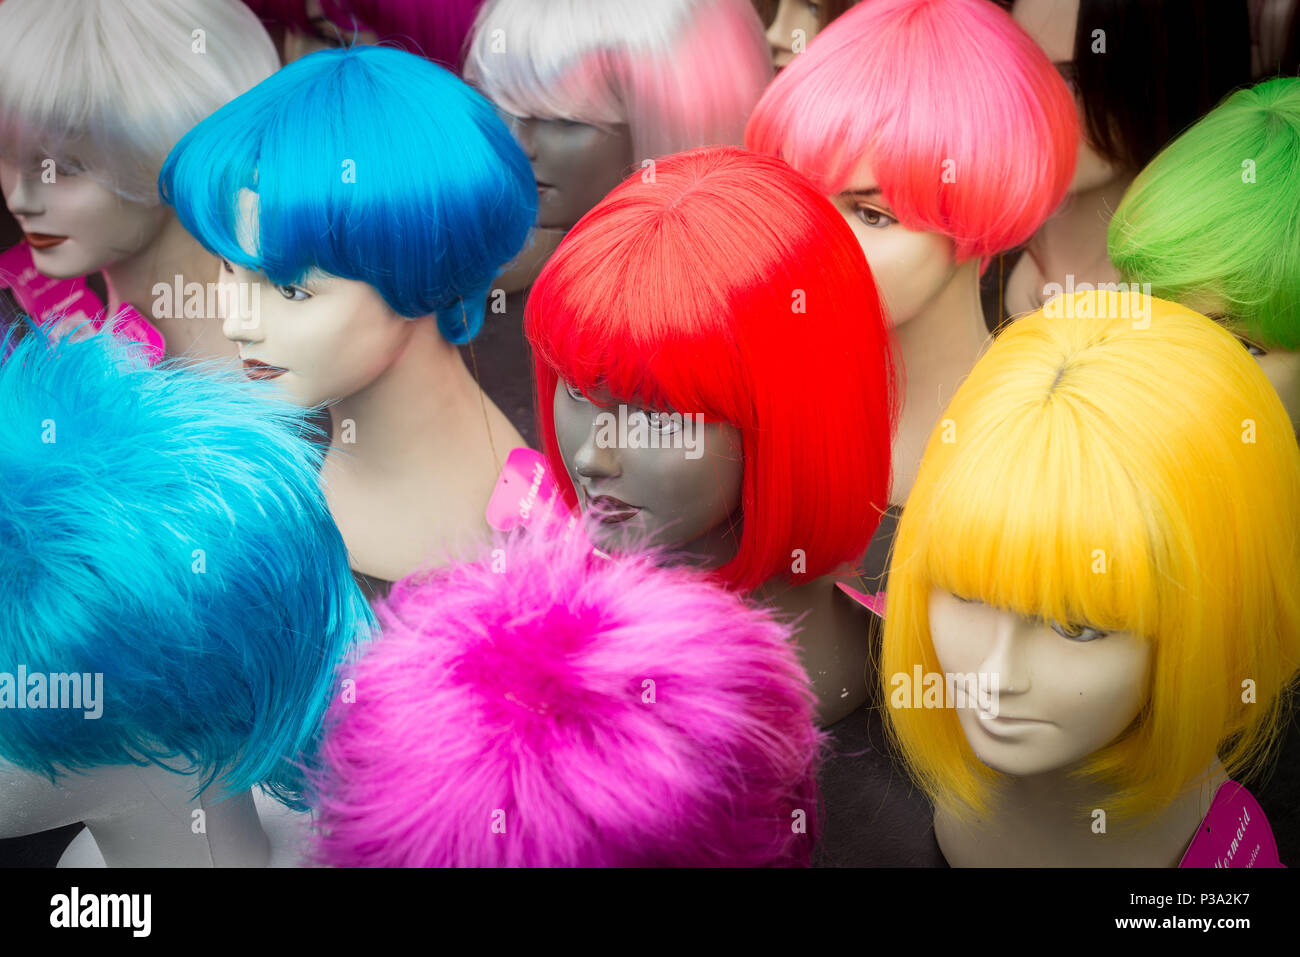 Colorful Hairstyles Stock Photos & Colorful Hairstyles Stock ...